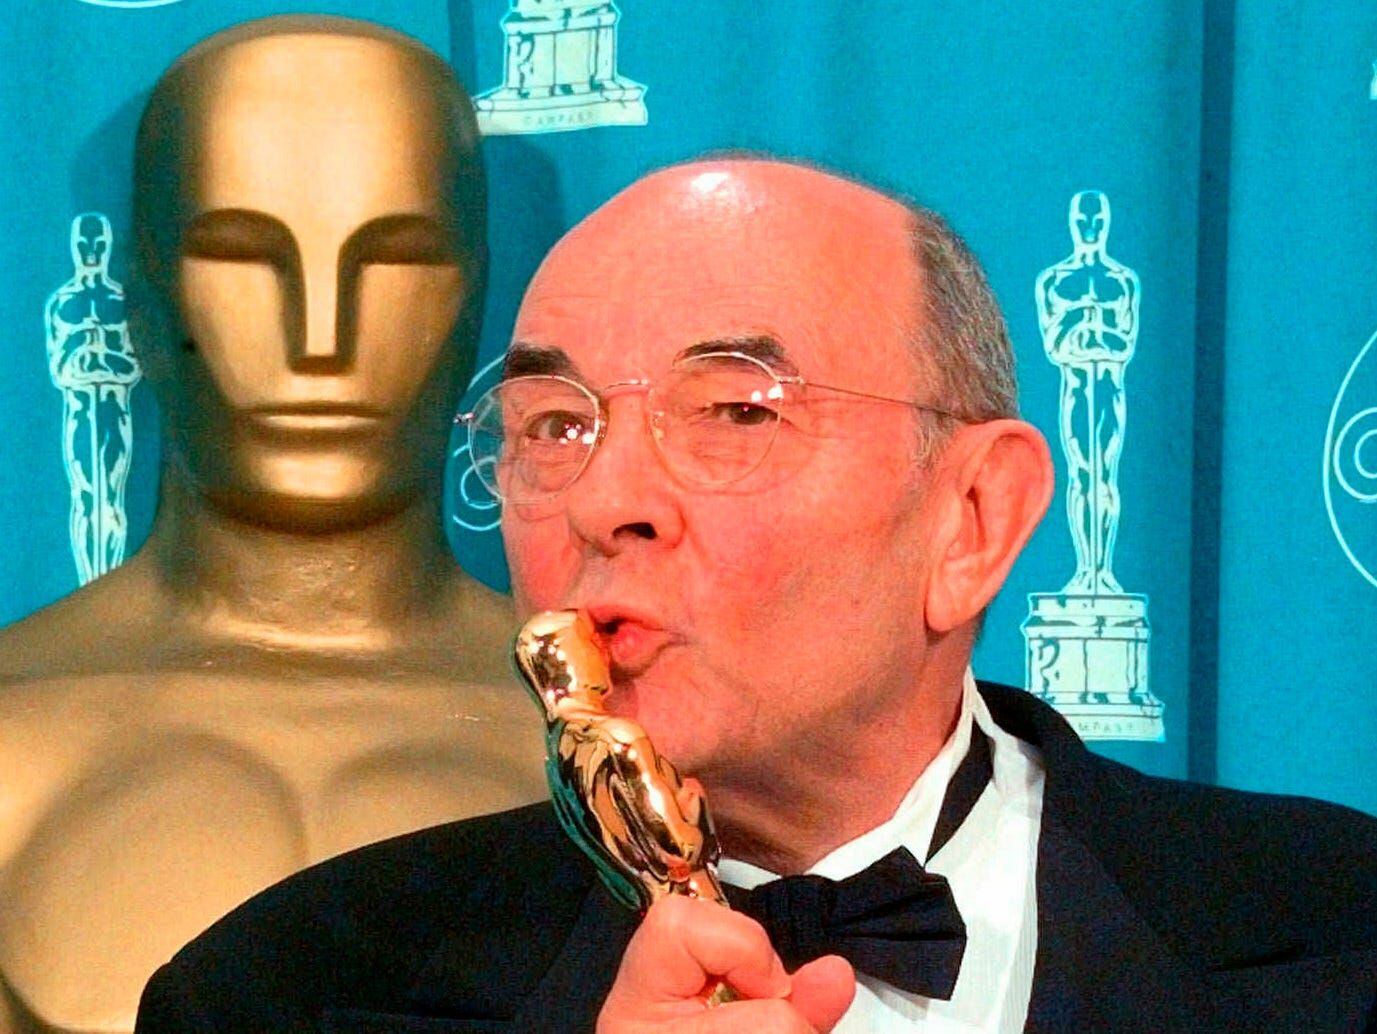 "In this March 23, 1998 file photo, director Stanley Donen kisses the Oscar he received for Lifetime Achievement backstage at the 70th Academy Awards at the Shrine Auditorium in Los Angeles. Donen, whose ""Singin' in the Rain"" provided some of the most unforgettable moments in movie history, has died, on Thursday, Feb. 21, 2019 in New York."